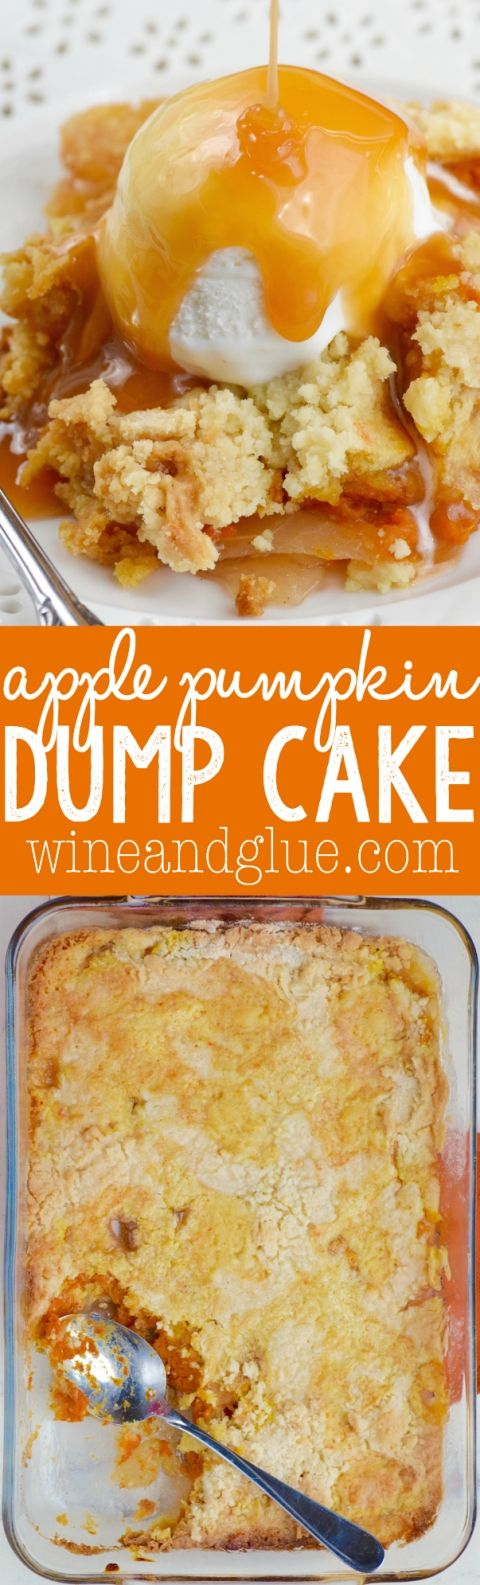 Apple and pumpkin combine perfectly in this delicious FOUR INGREDIENT Apple Pumpkin Dump Cake!